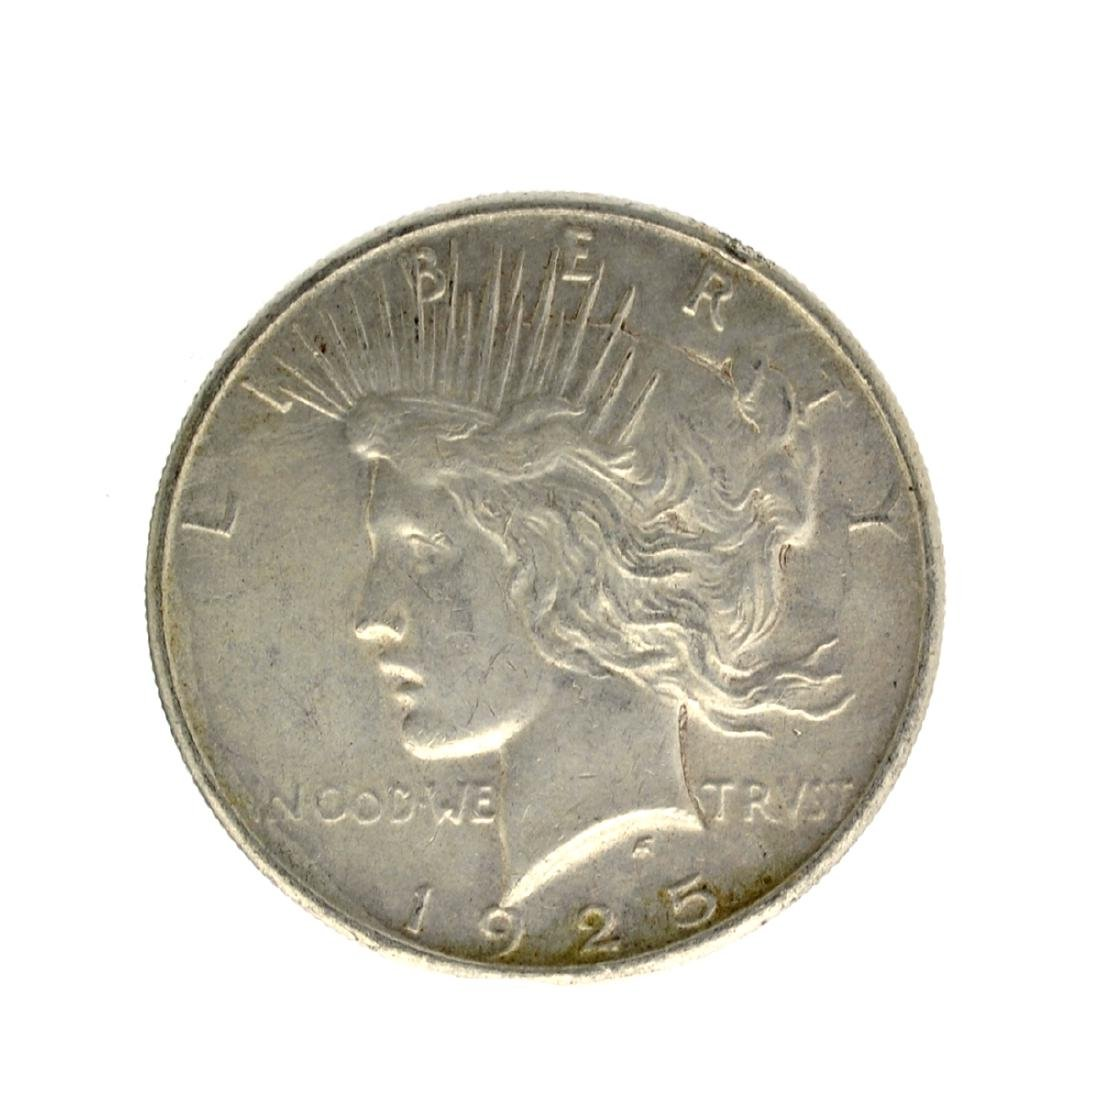 1925 Peace Silver Dollar Coin